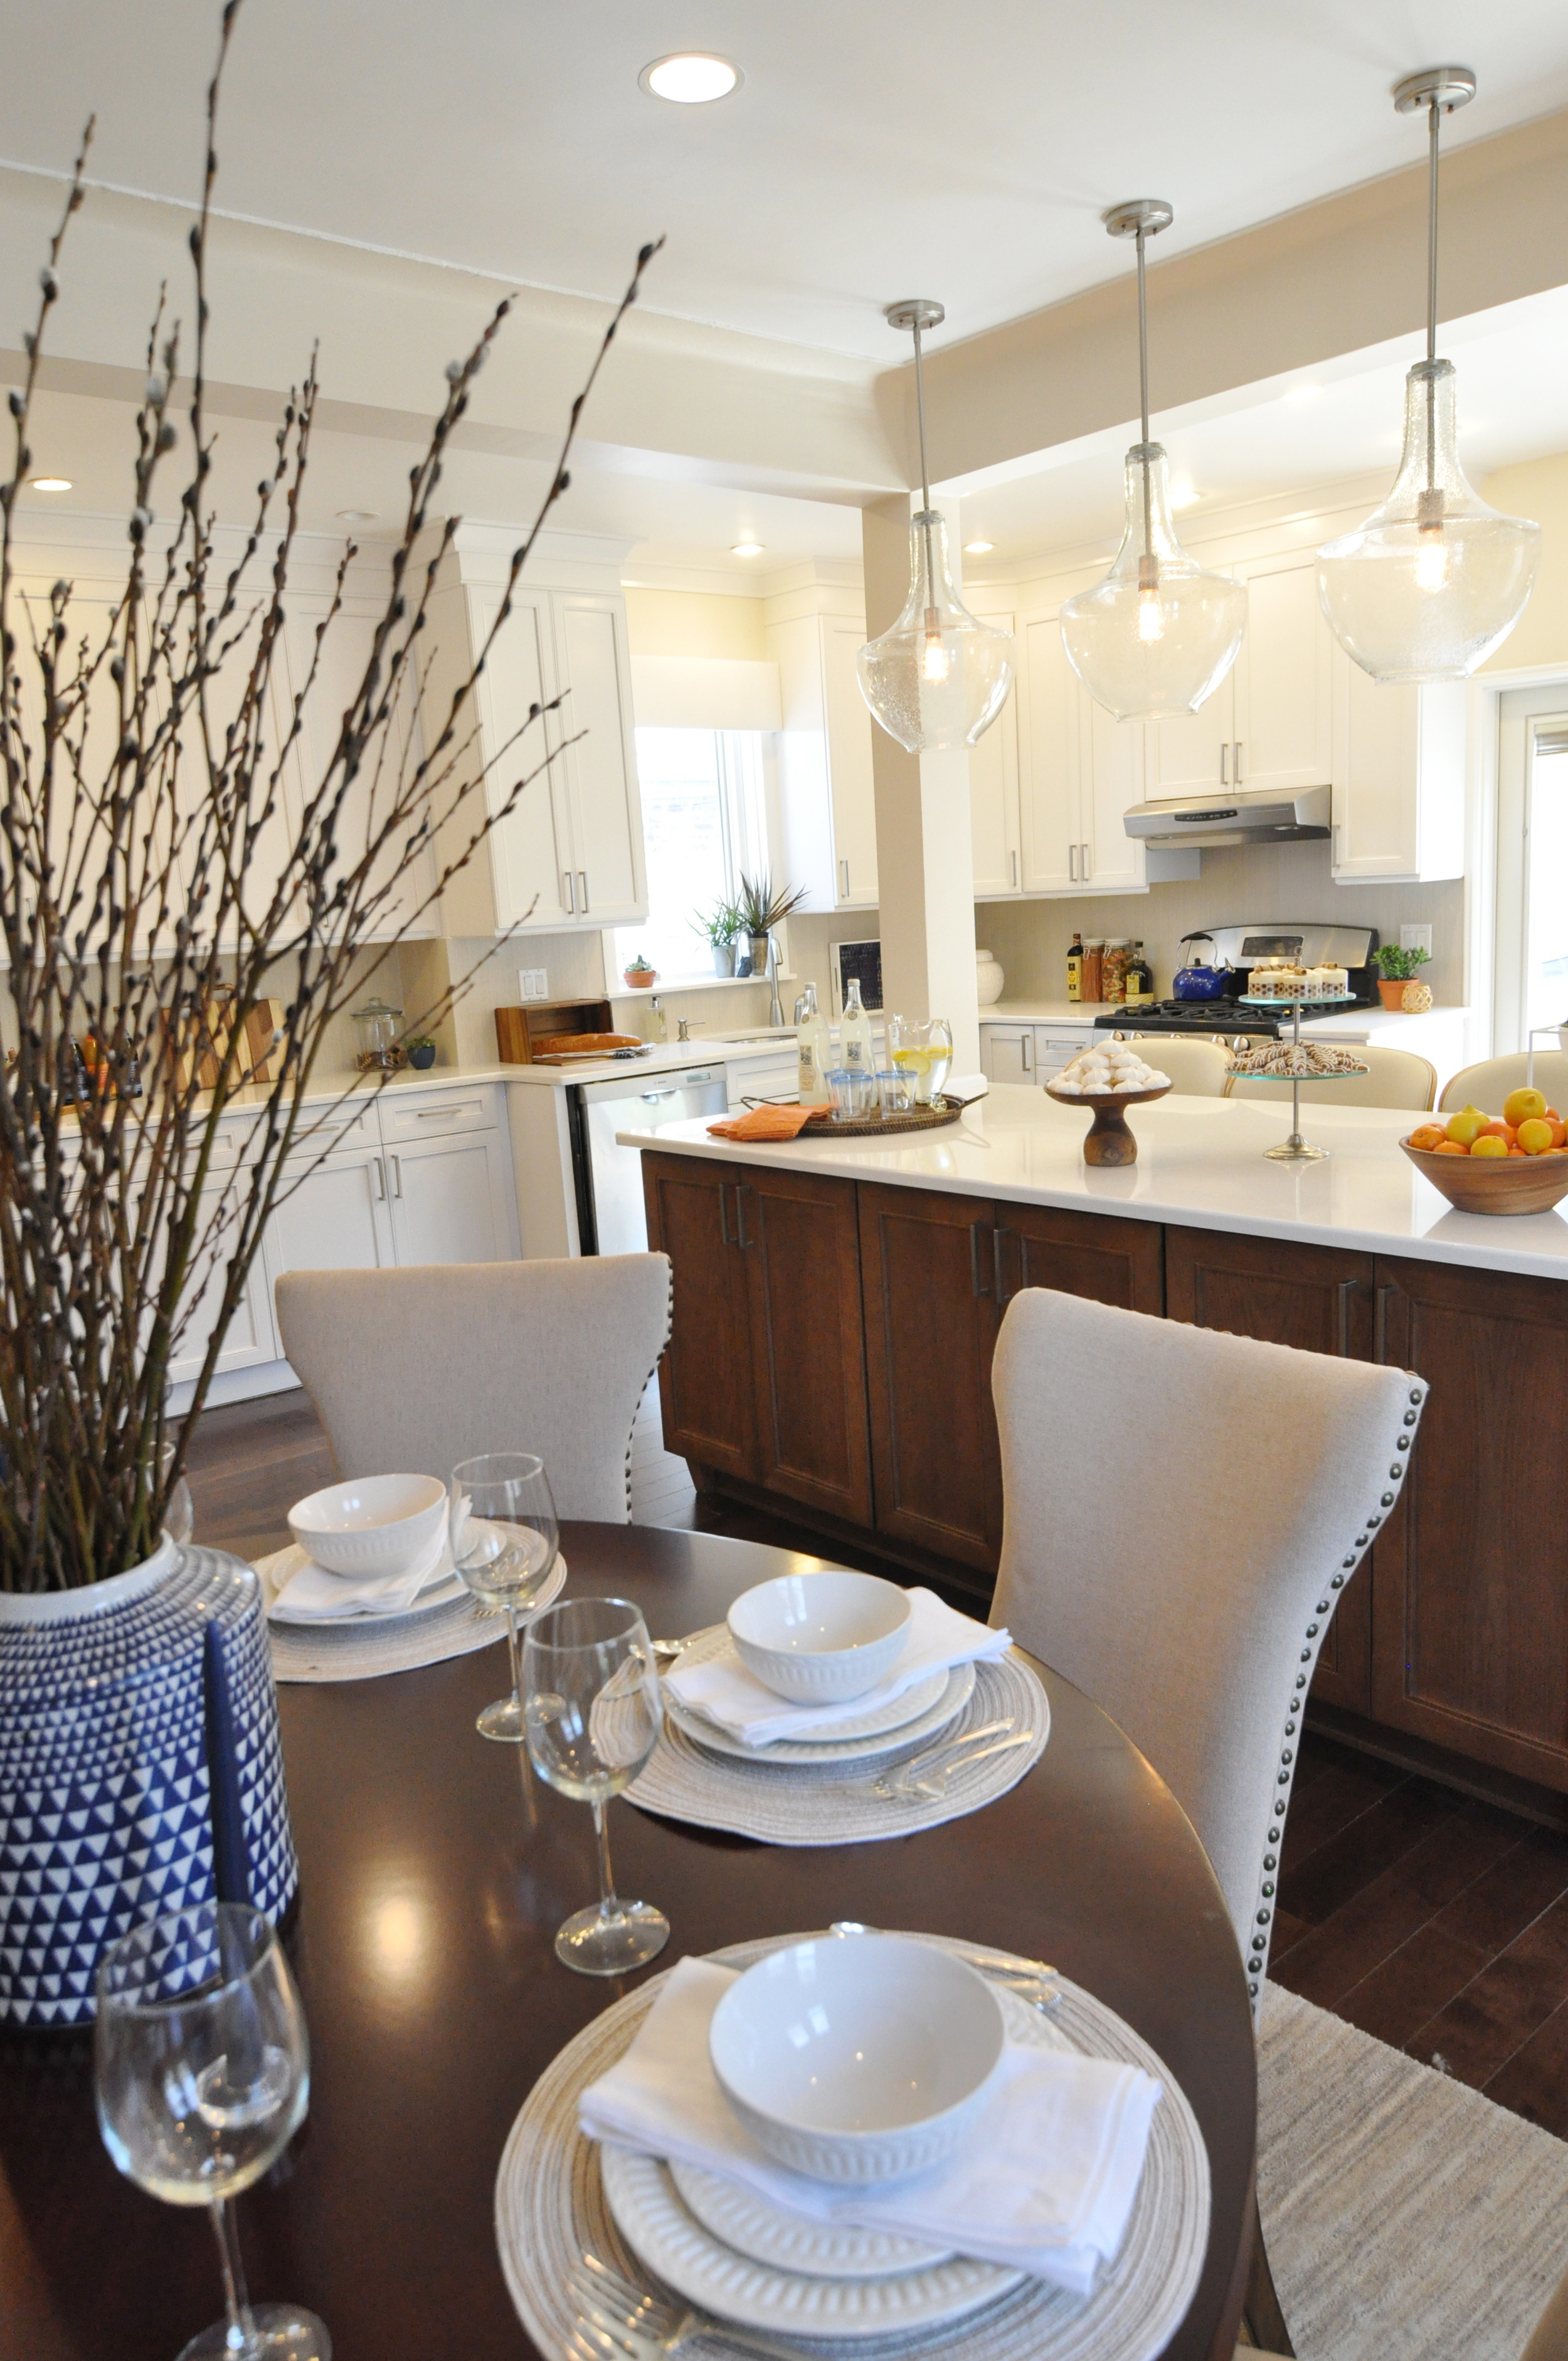 Kim Mitchell Production Designer_HGTV_Buying and Selling with The Property Brothers_Season 3_Episode 315_Dining Room_Kitchen Remodel.jpg